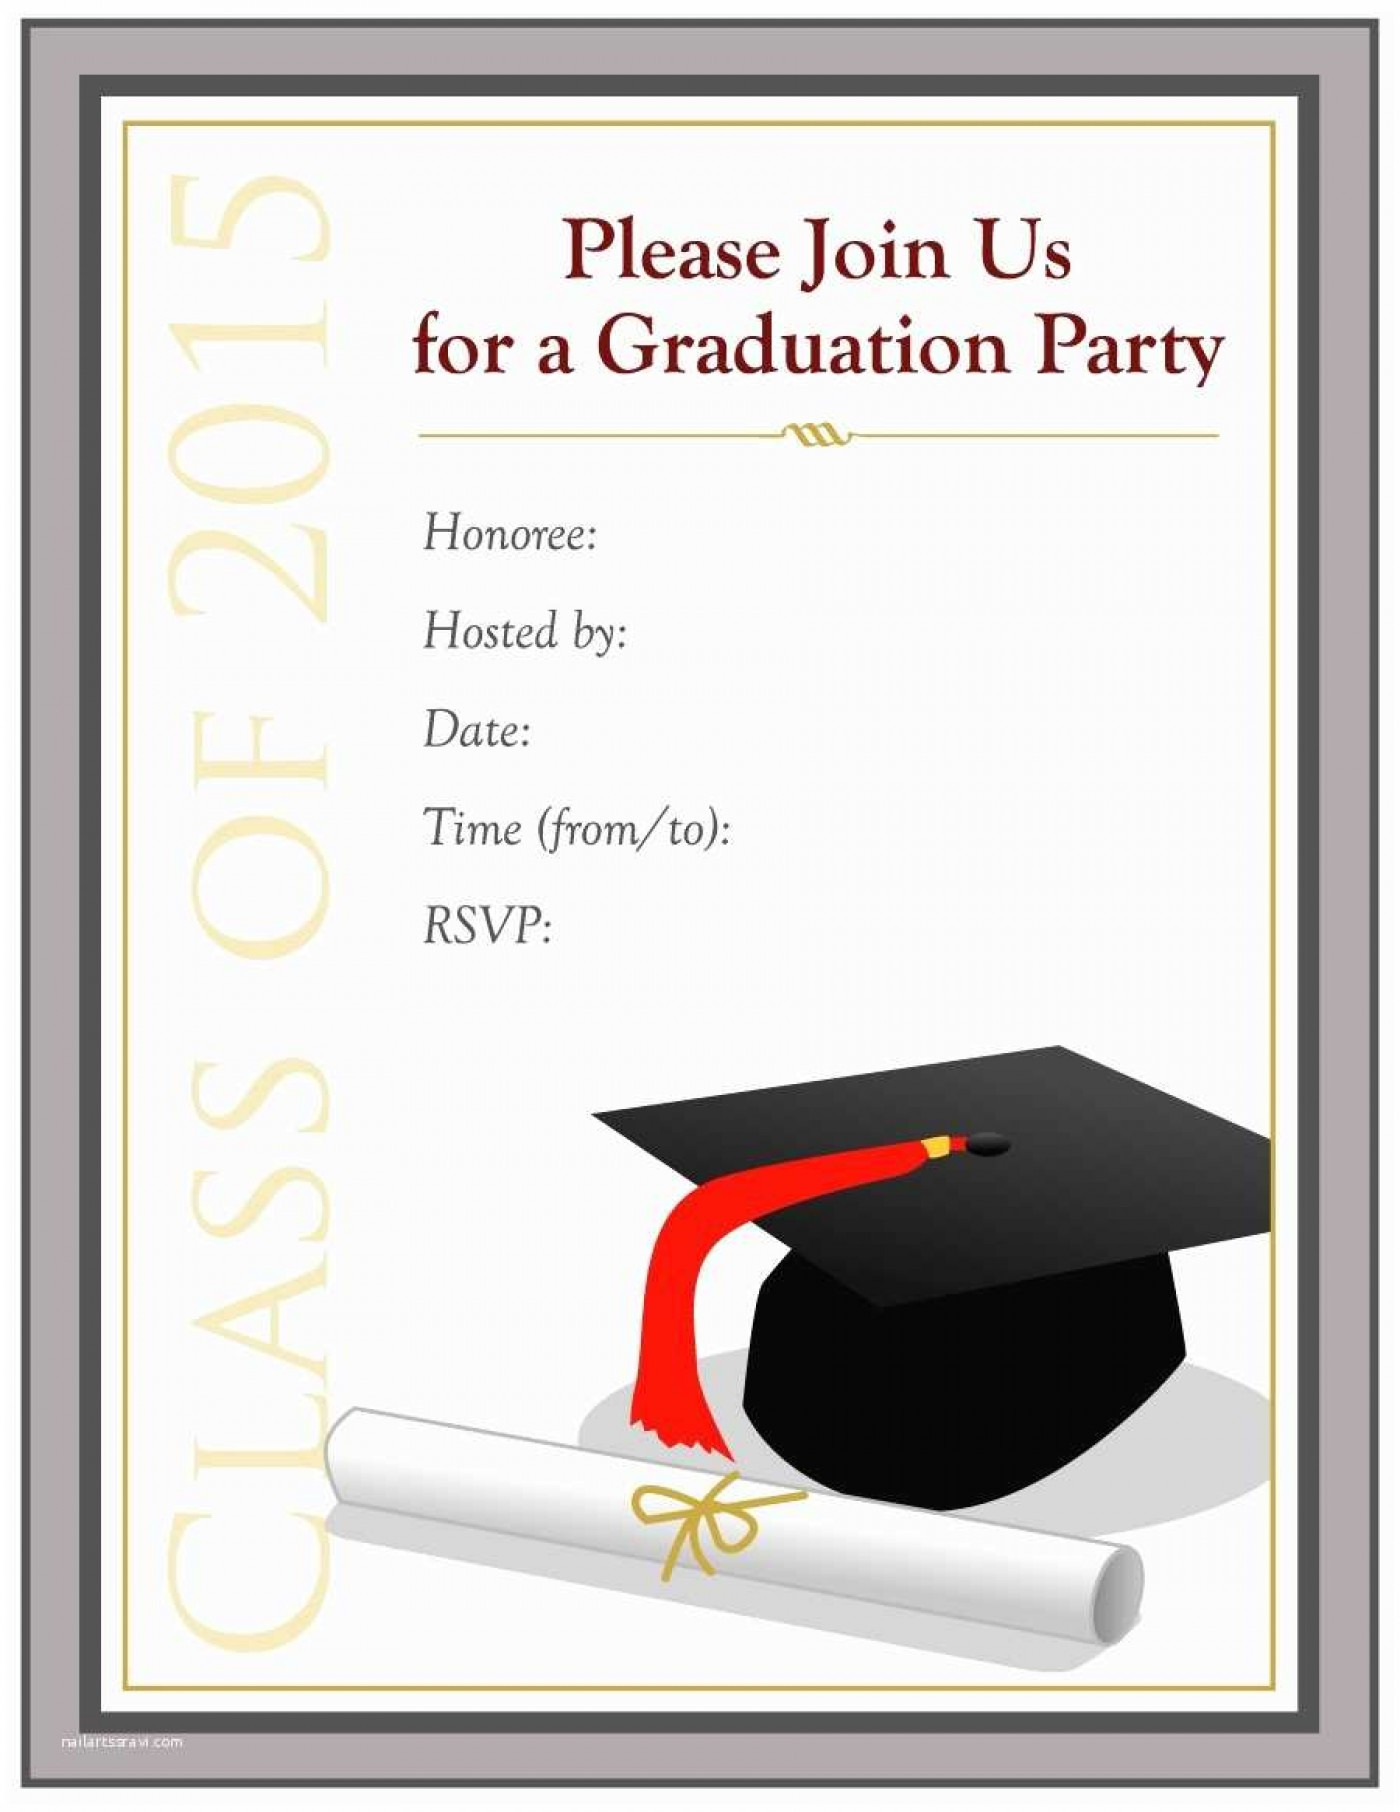 006 Awful College Graduation Invitation Template Sample  Party Free For Word1400